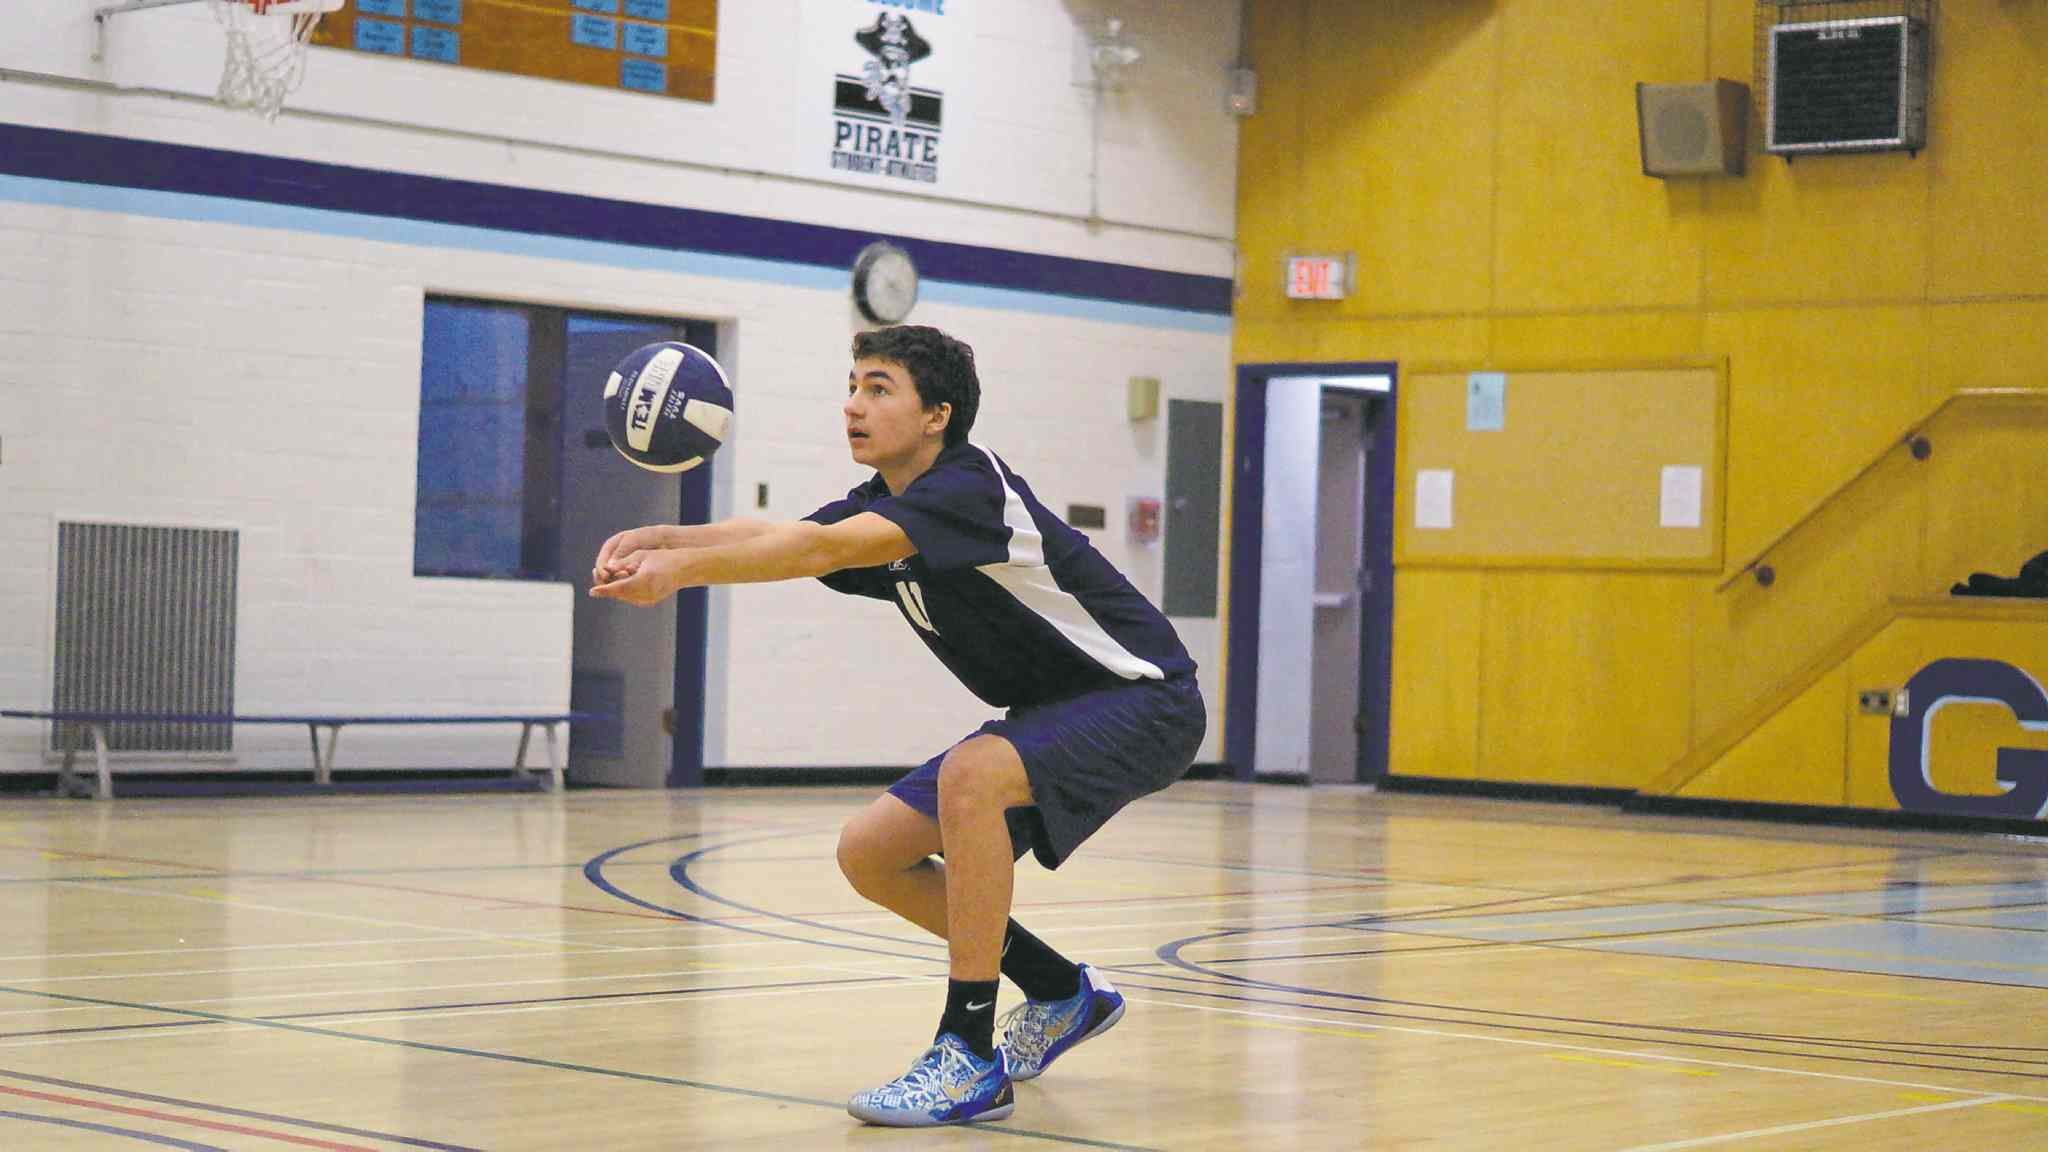 Nov. 26, 2014 - The Grade 9 boys' volleyball team at Grant Park are going to provincials next weekend. Nick Cicek passes the ball during practice. (DANIELLE DA SILVA/CANSTAR/SOUWESTER)